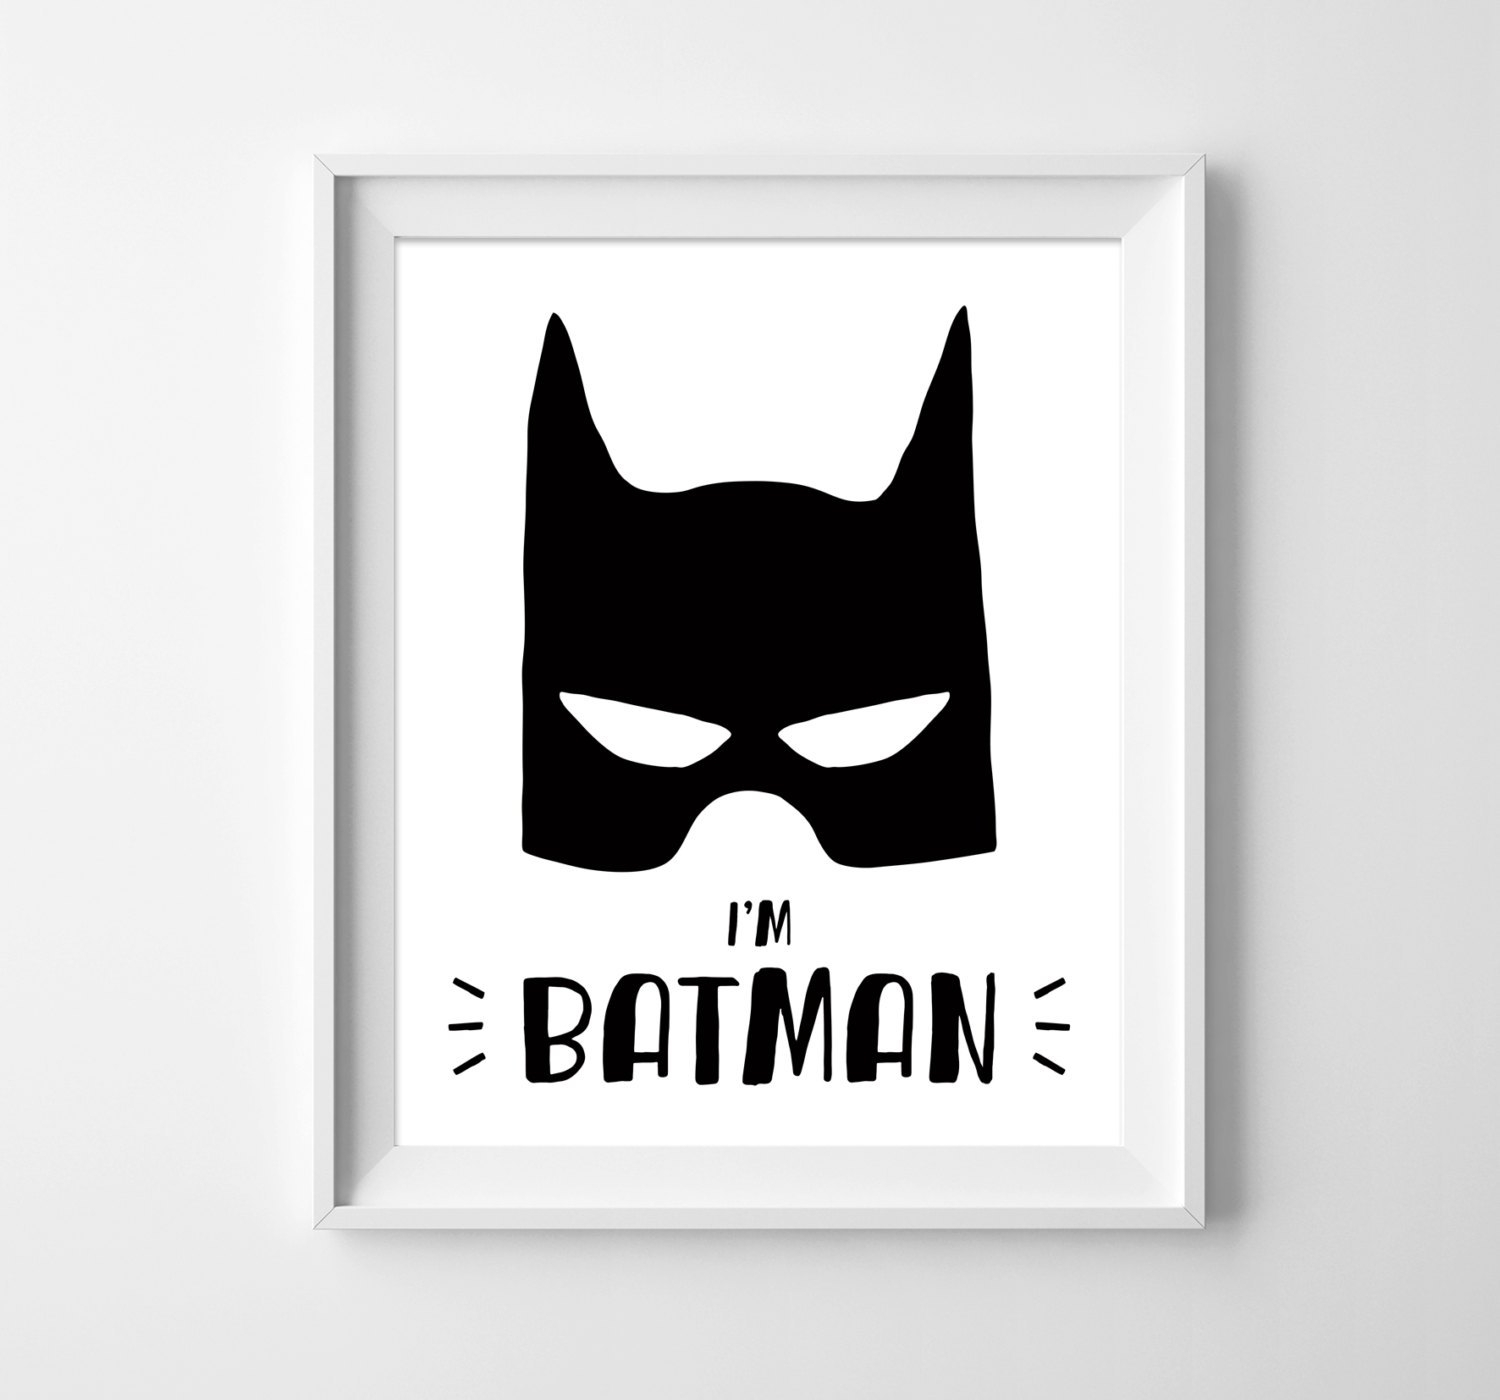 Amazing Dc Comics Wall Art Batman Decor Superhero Poster Nerdy Pic Within Best And Newest Batman Wall Art (View 3 of 20)